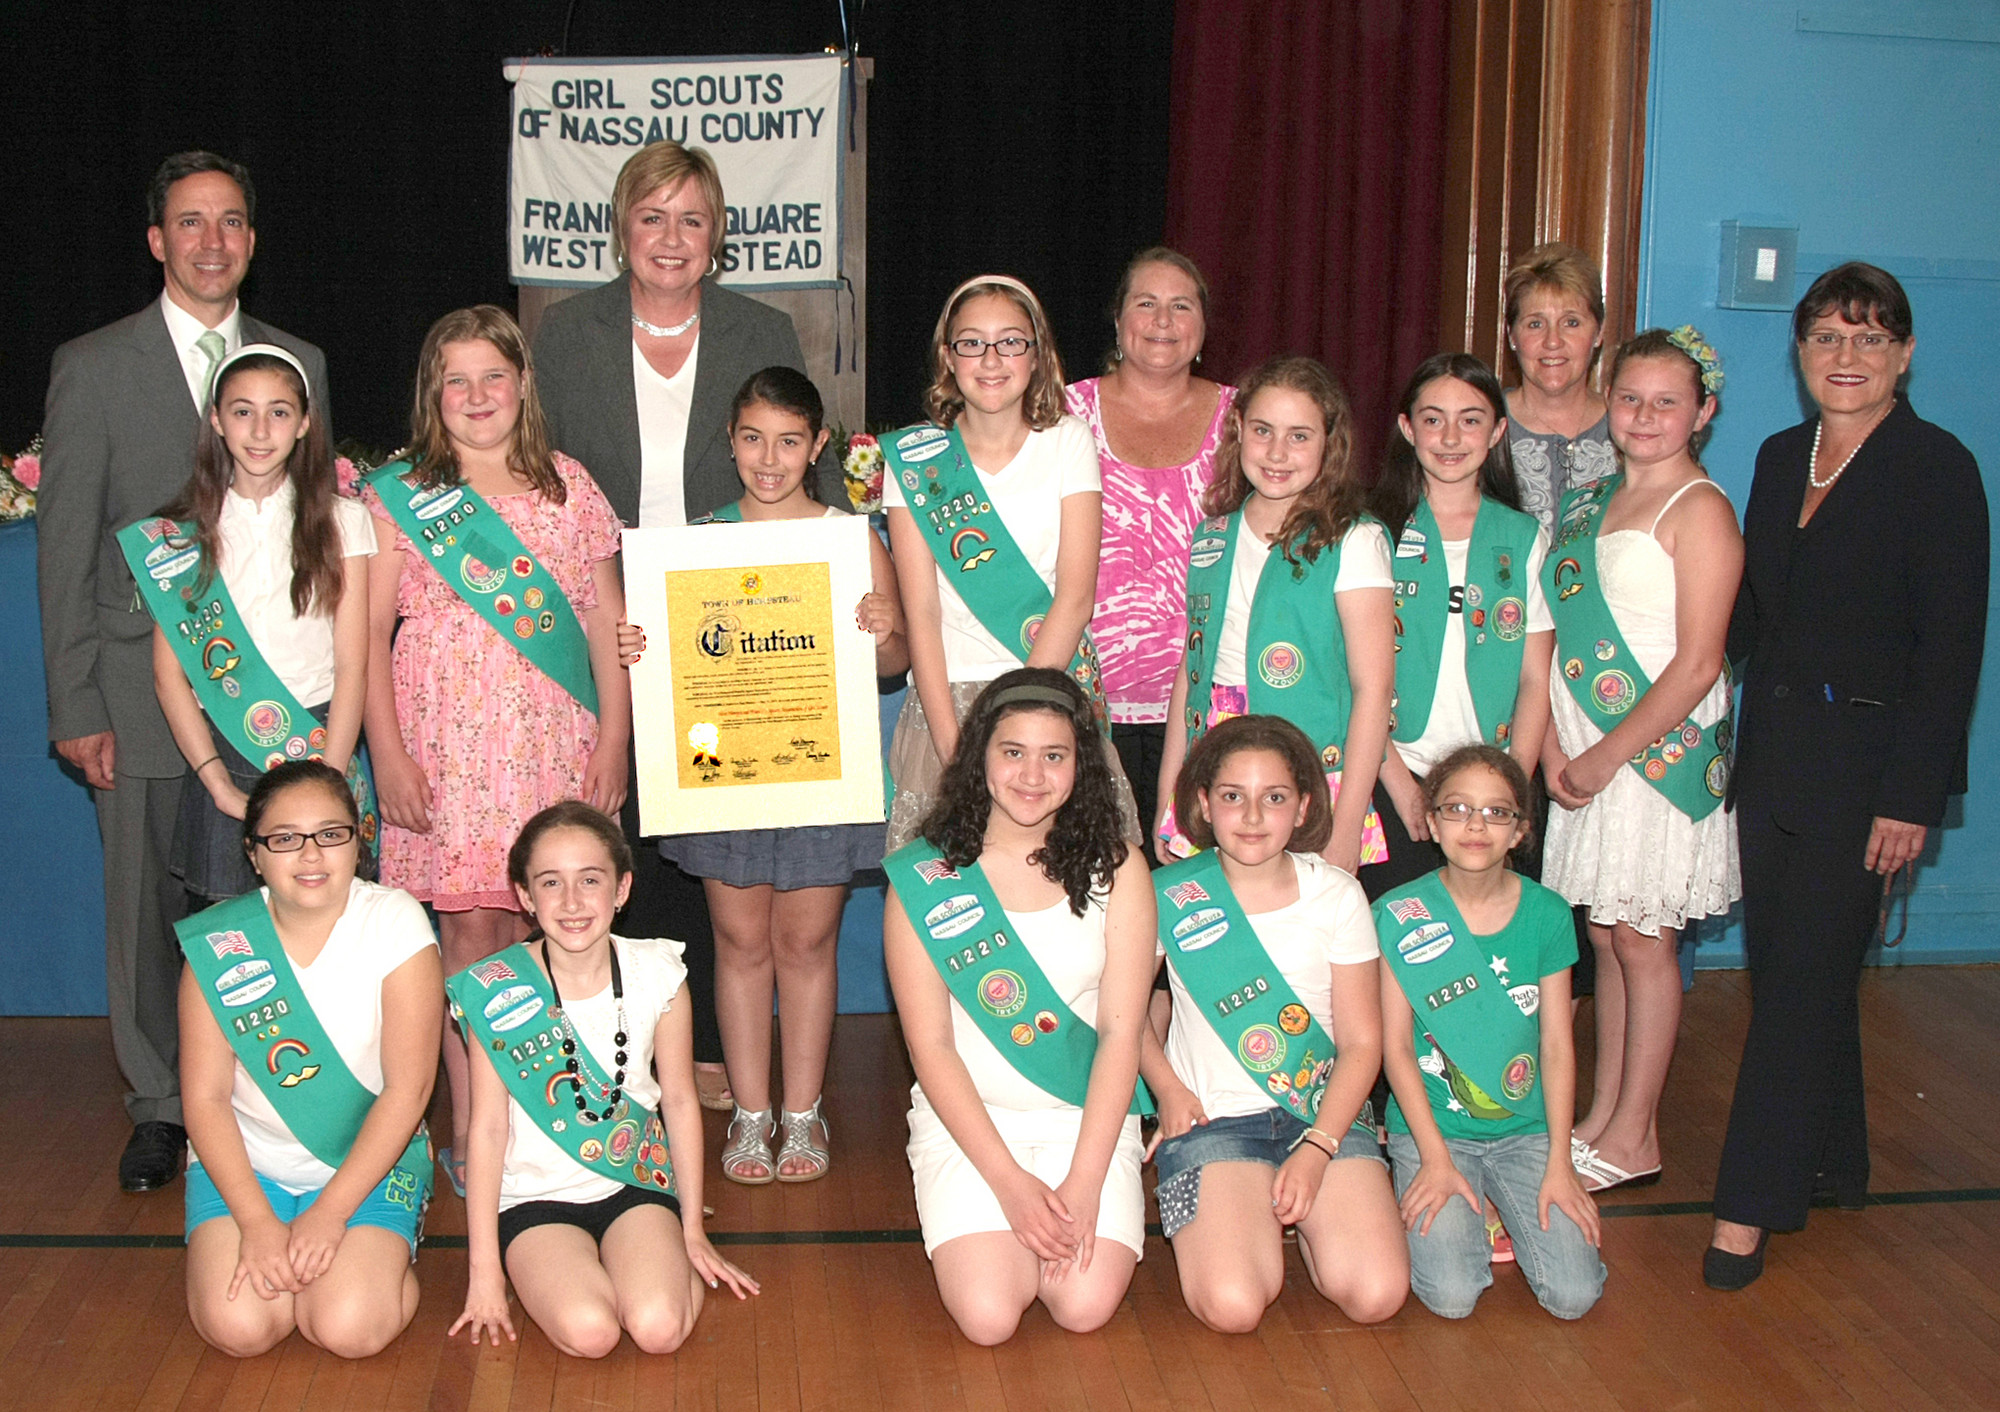 New York State Senator Jack Martins, Nassau County Clerk Maureen O'Connell, Town of Hempstead Supervisor Kate Murray congratulate Troop 1345 with the Bronze Award alongside Leader Carol Anne Stiklickas and Bronze Awardee Jeri Stiklickas